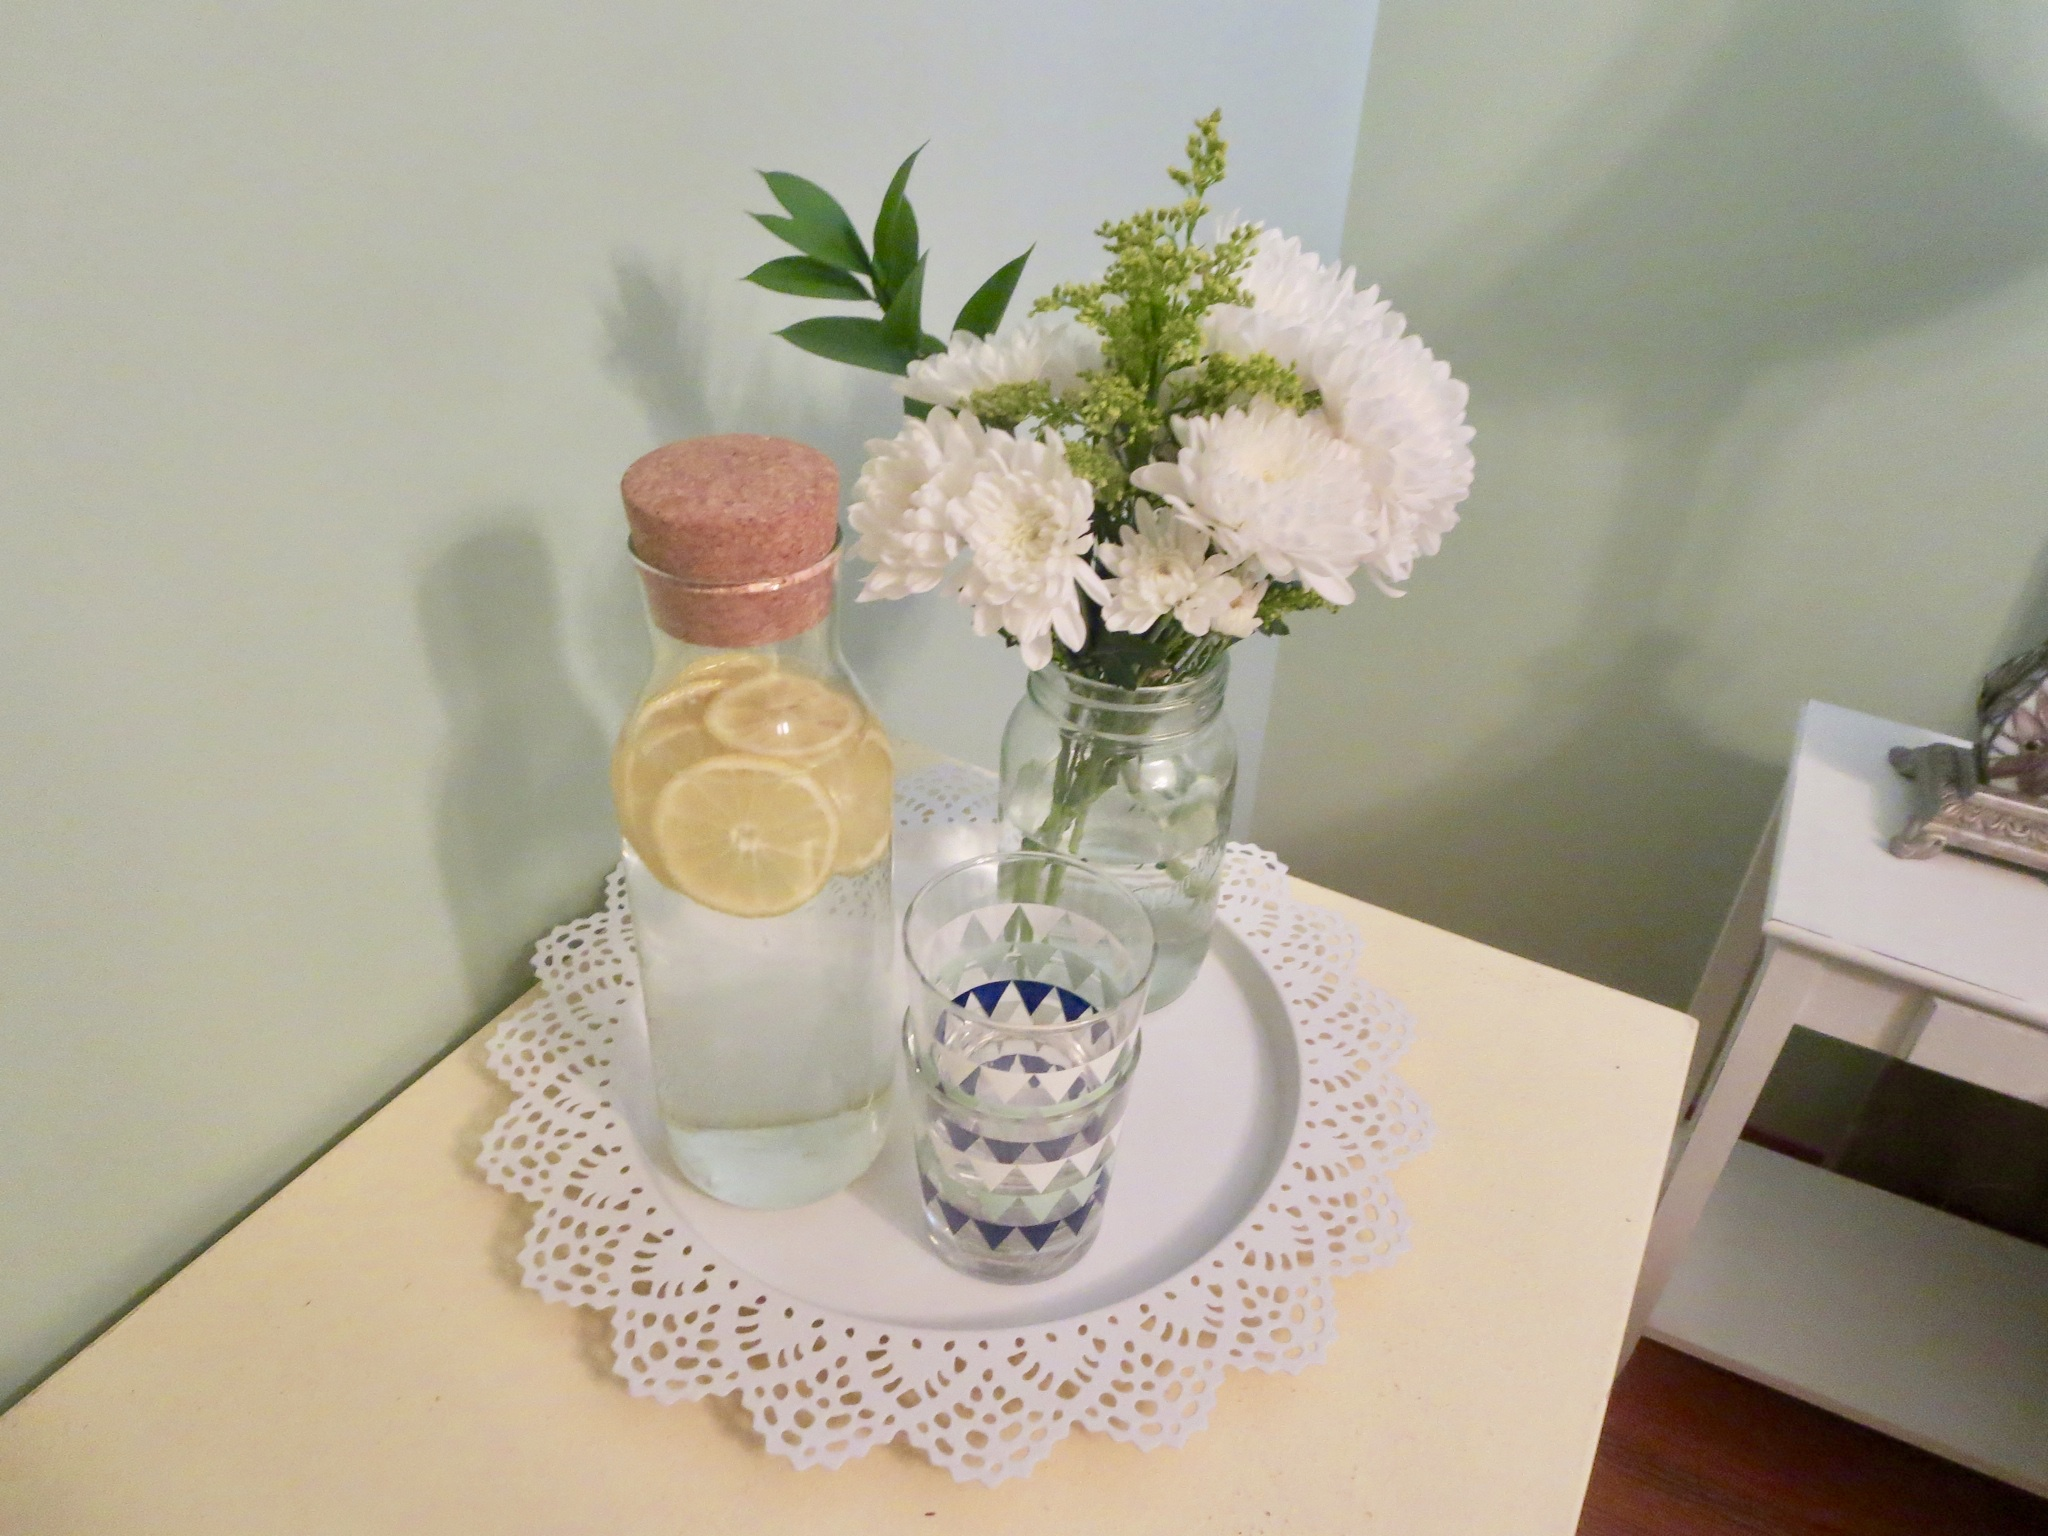 5 Easy Ways To Refresh a Room